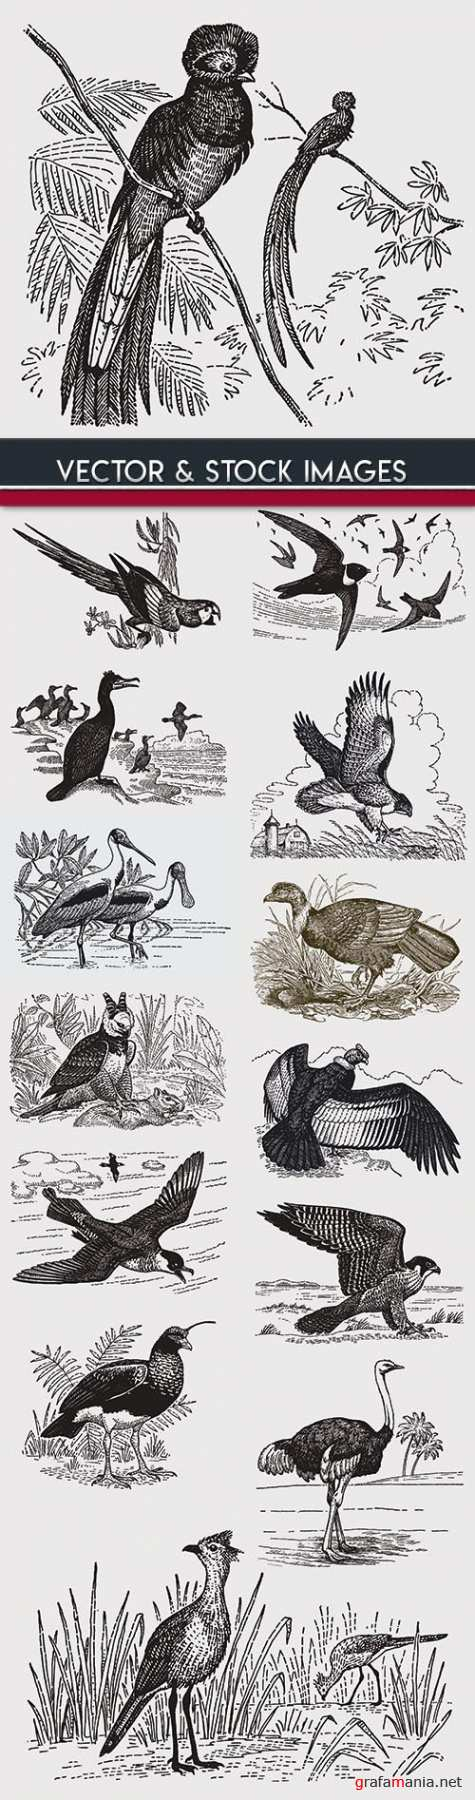 Birds drawn engravings in vintage style